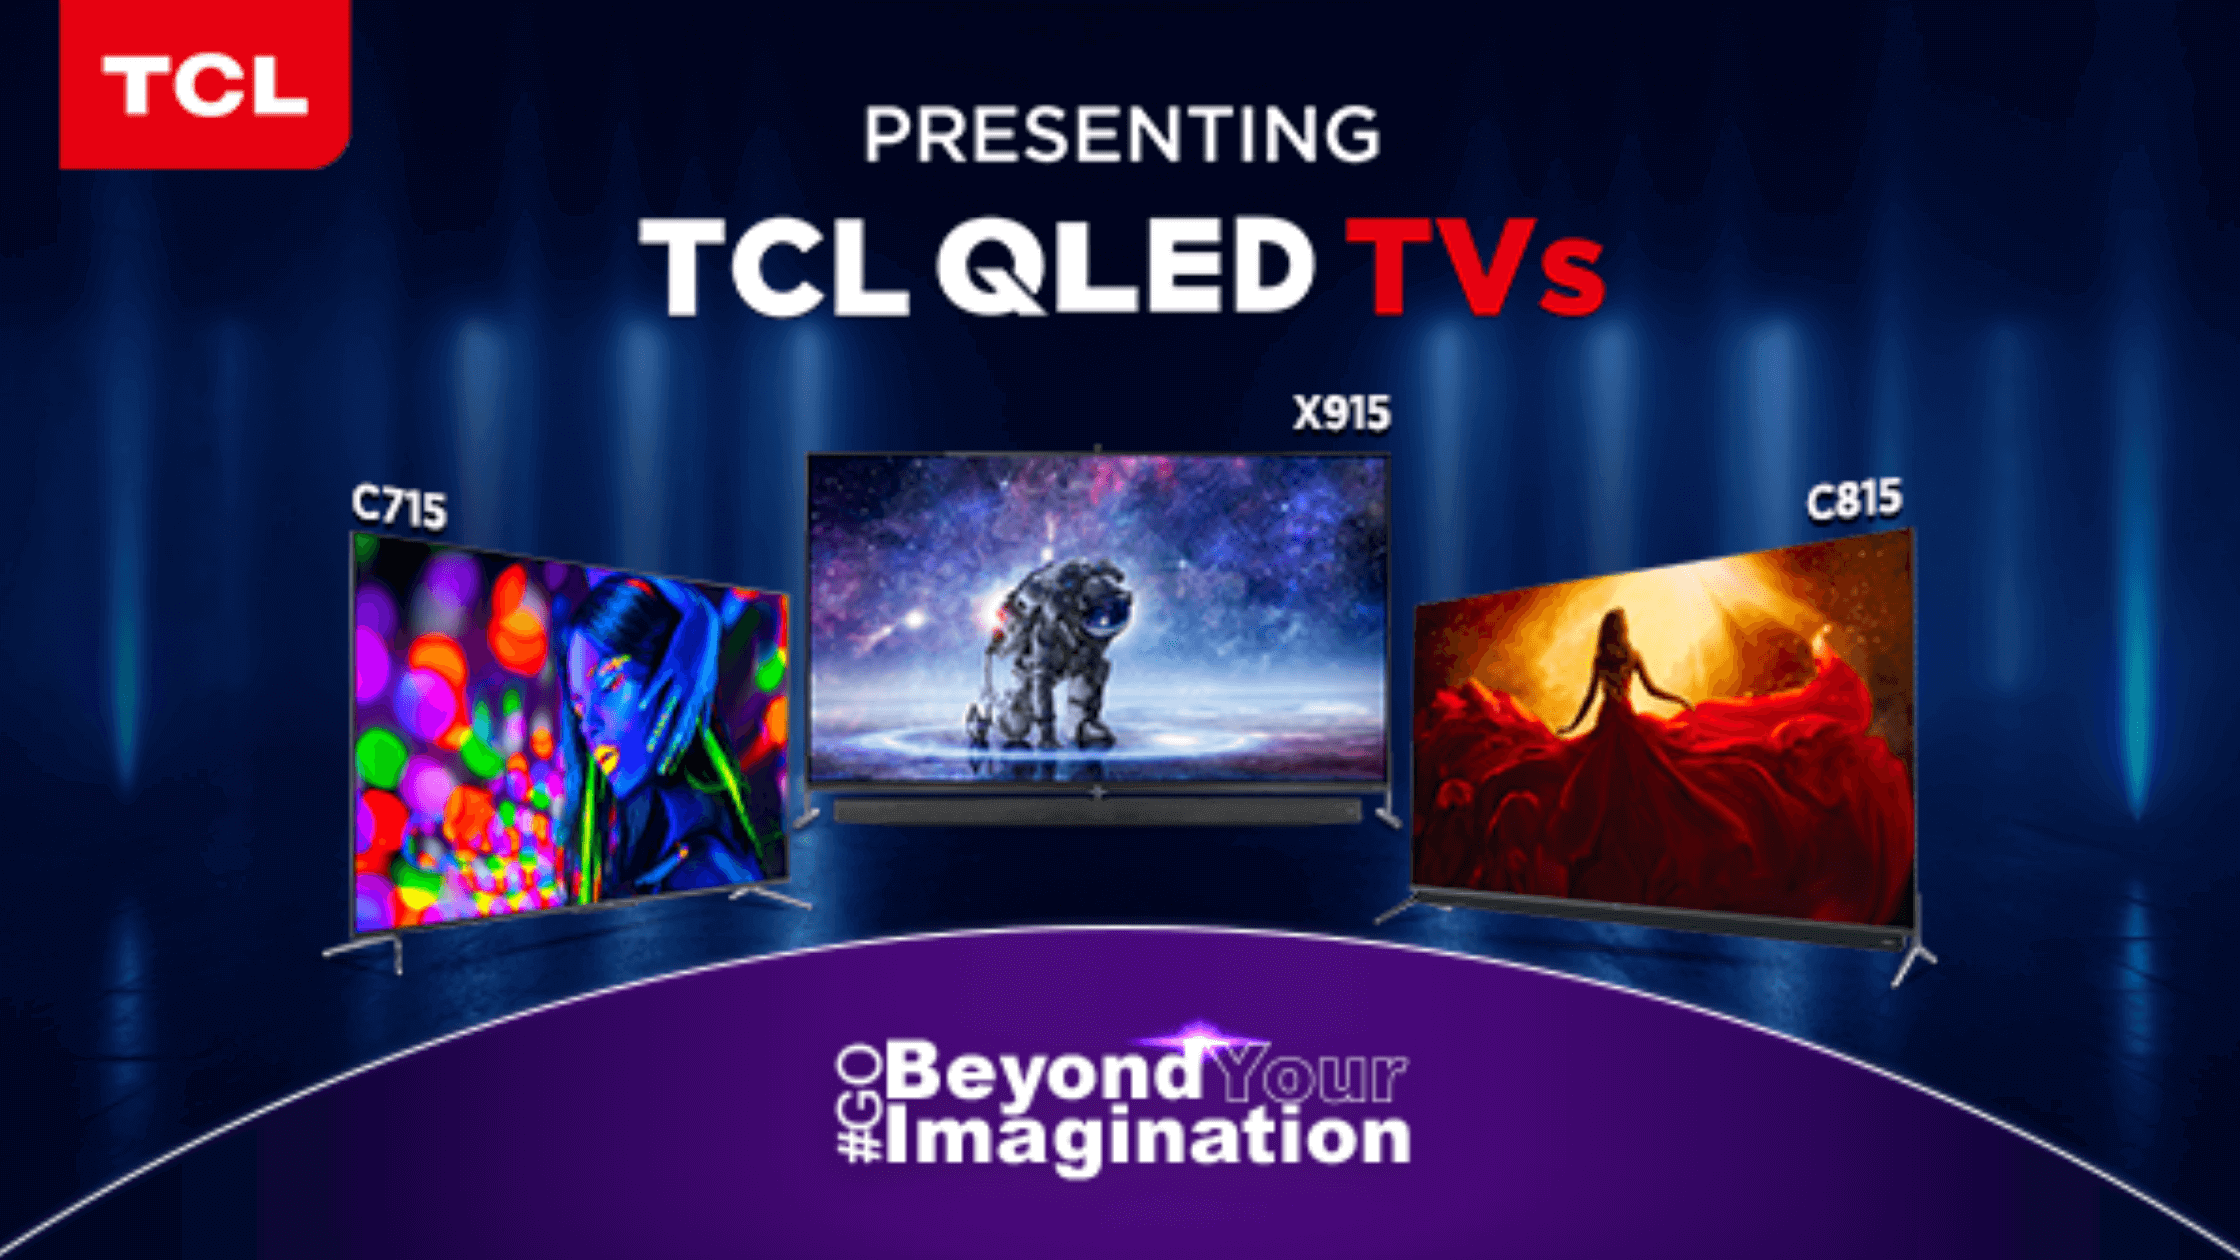 TCL Officially Launched New 4K and 8K QLED TV Lineup